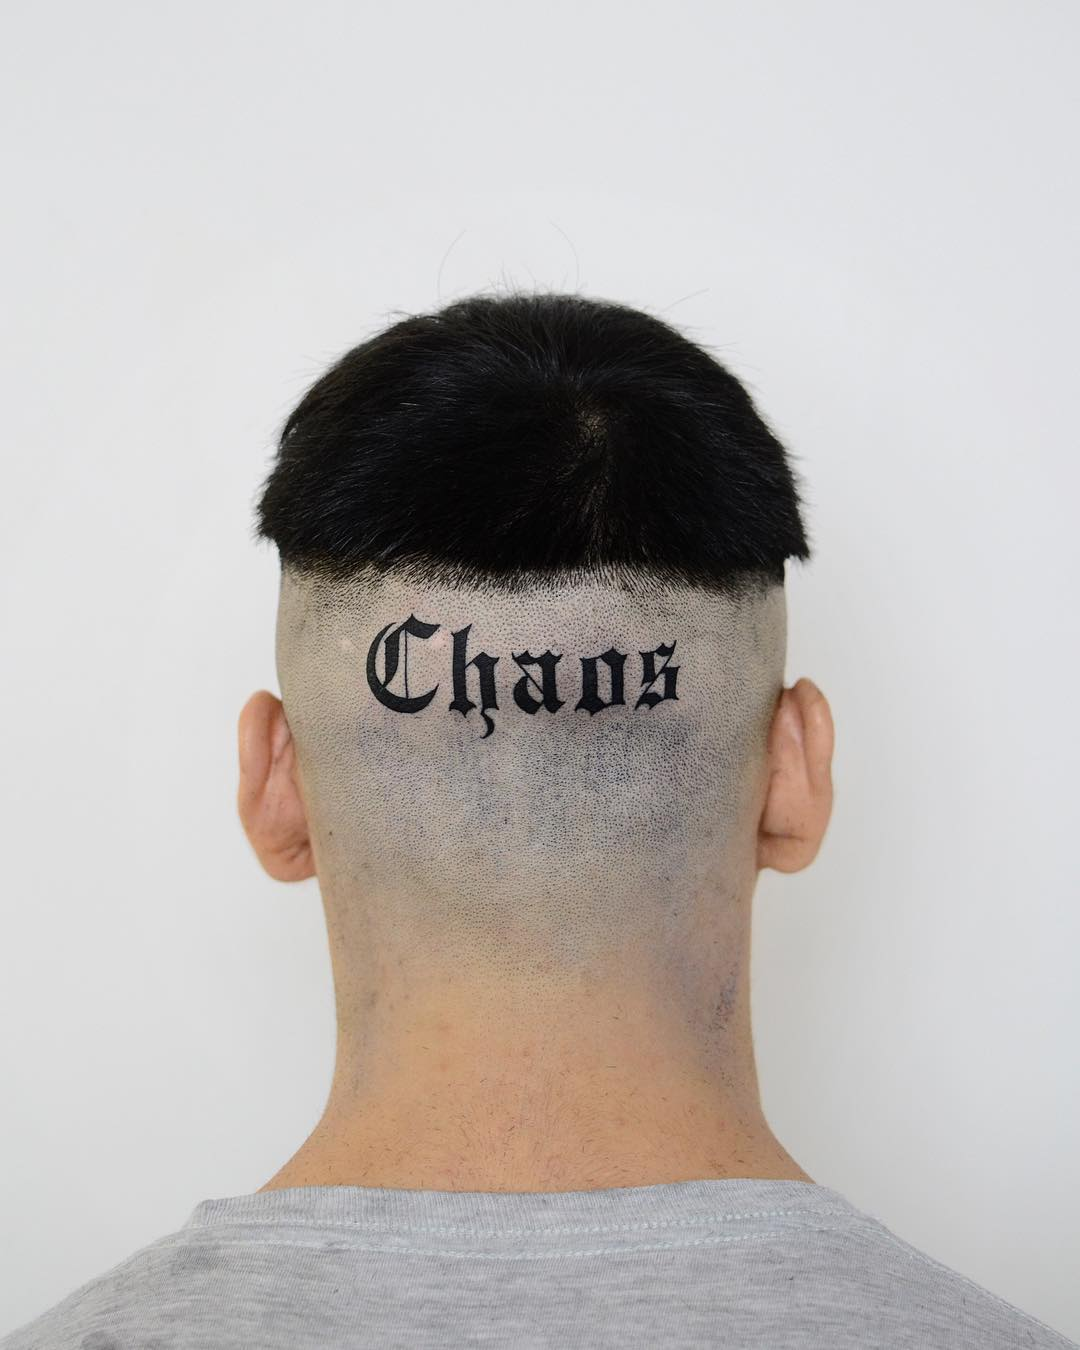 Chaos everywhere around me by @tototatuer